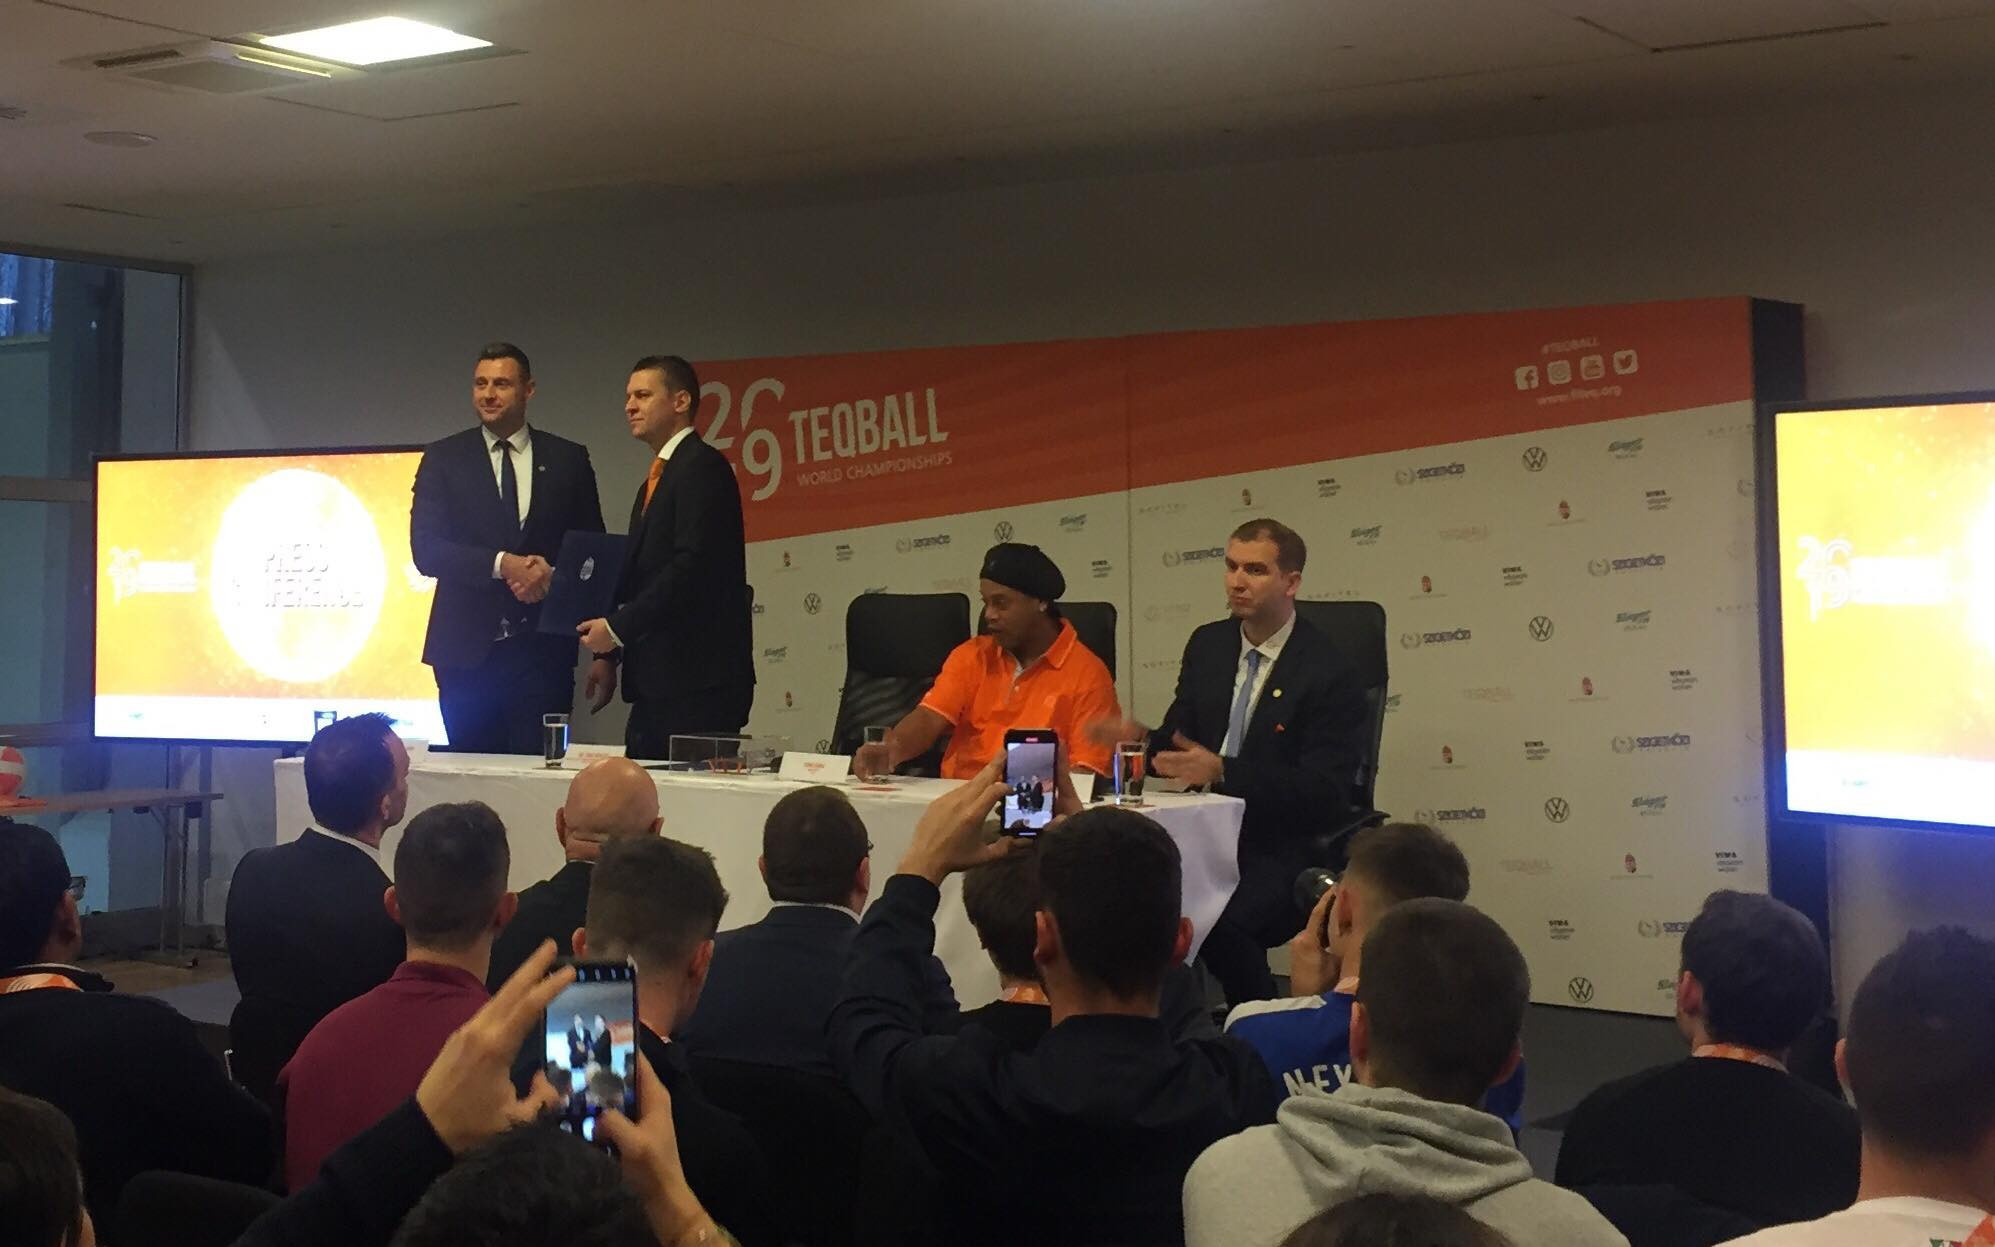 Hungary's Ministry of Foreign Affairs and Trade and the International Teqball Federation signed a strategic cooperation agreement during the press conference ©ITG